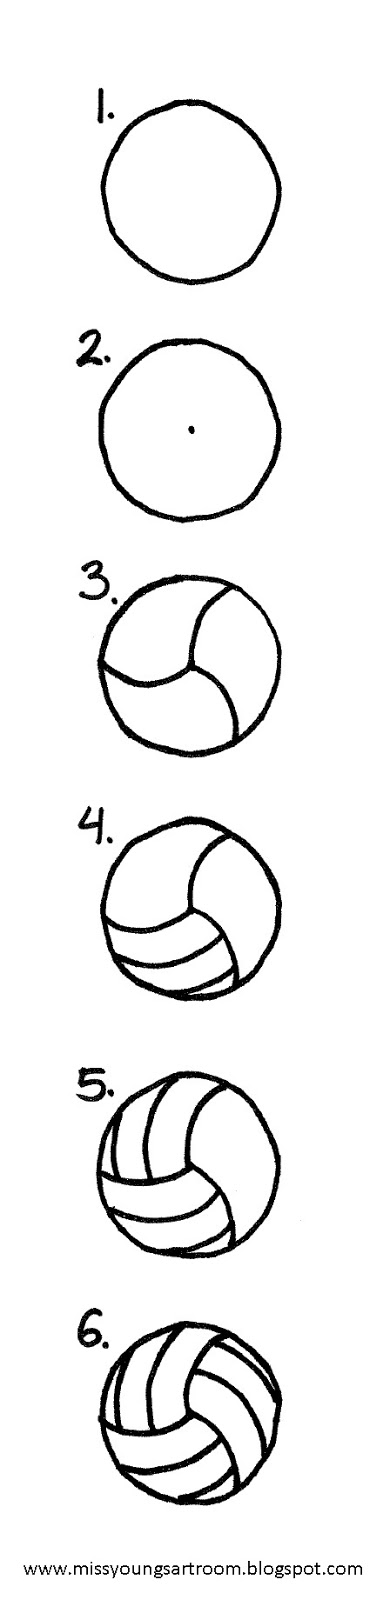 Miss Young S Art Room How To Draw A Volleyball